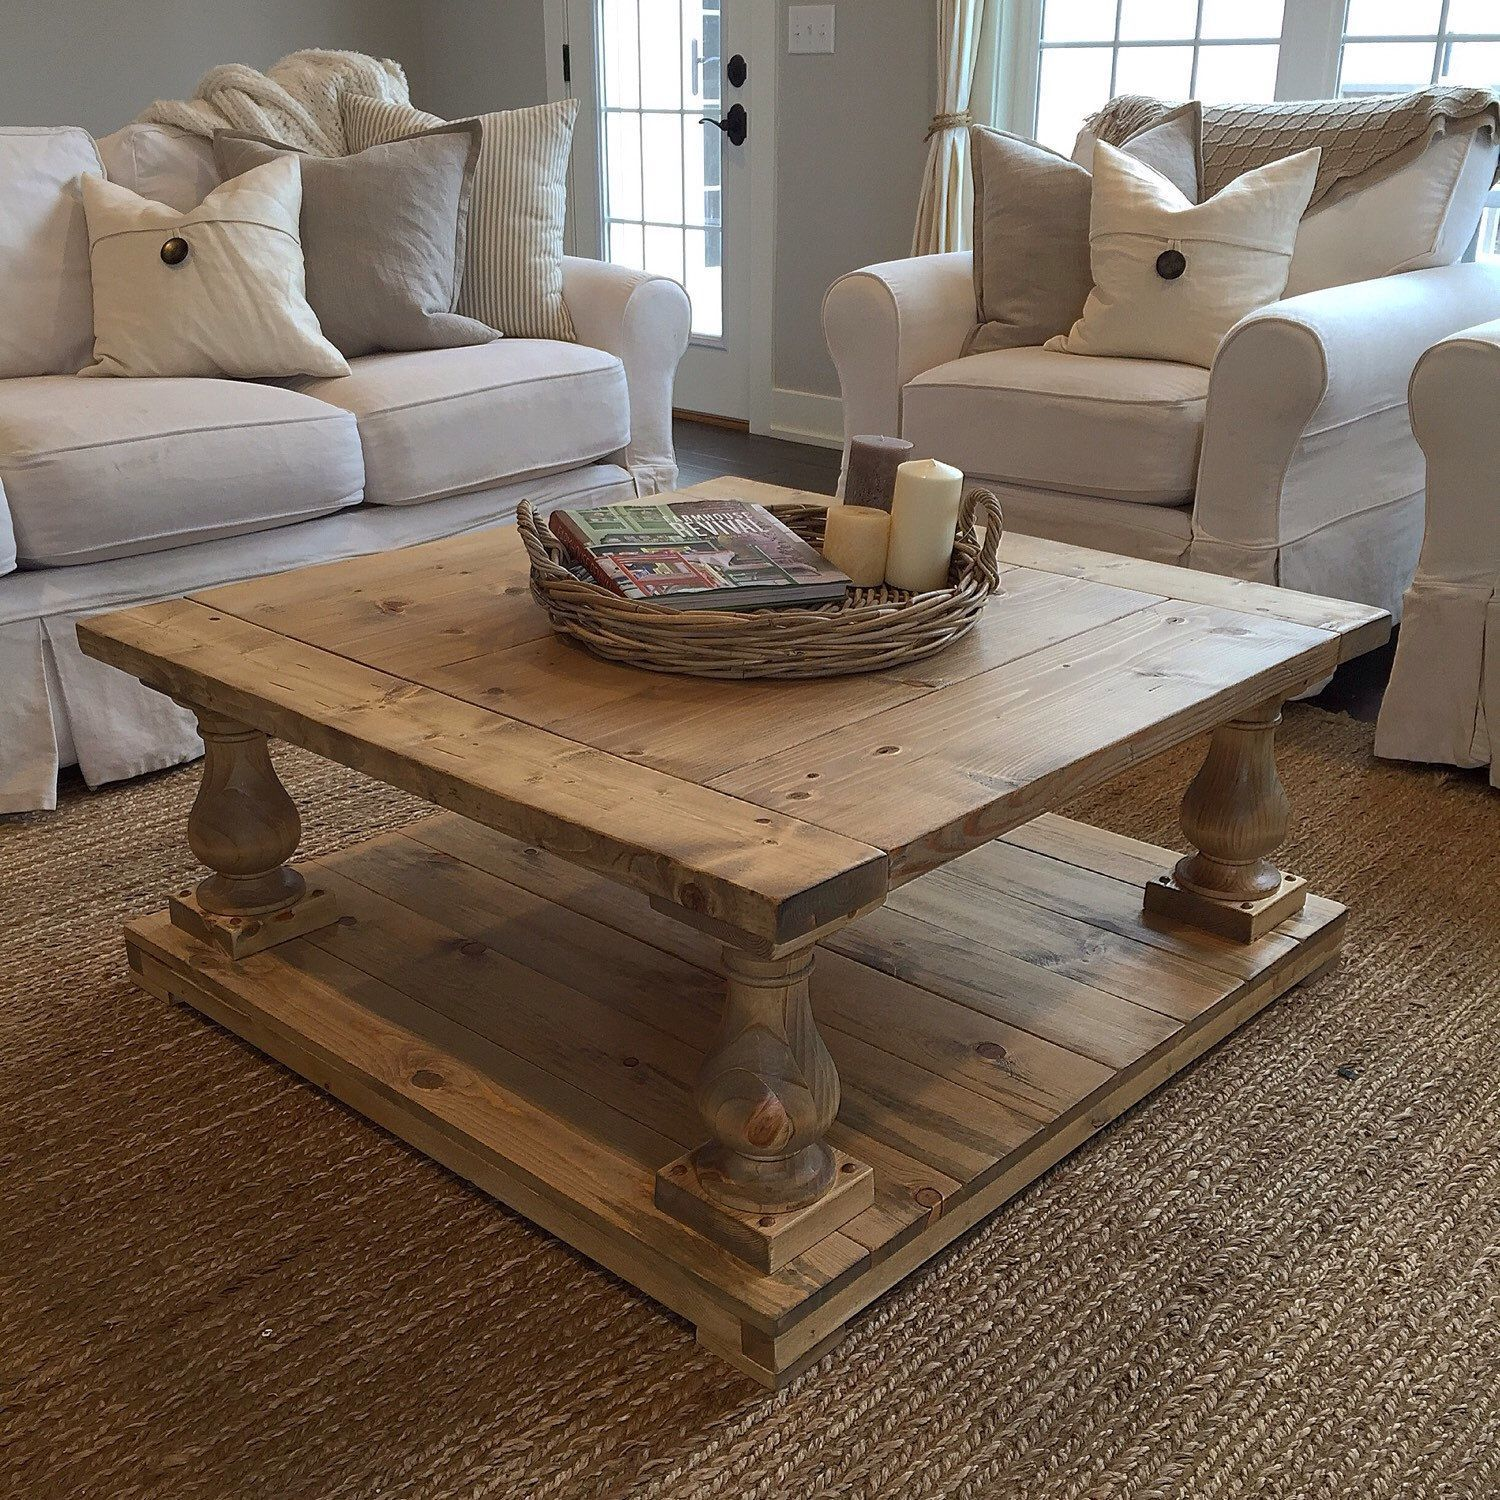 Rustic Farmhouse Cottage Baluster Coffee Table By Bushelandpeckfarm On Etsy